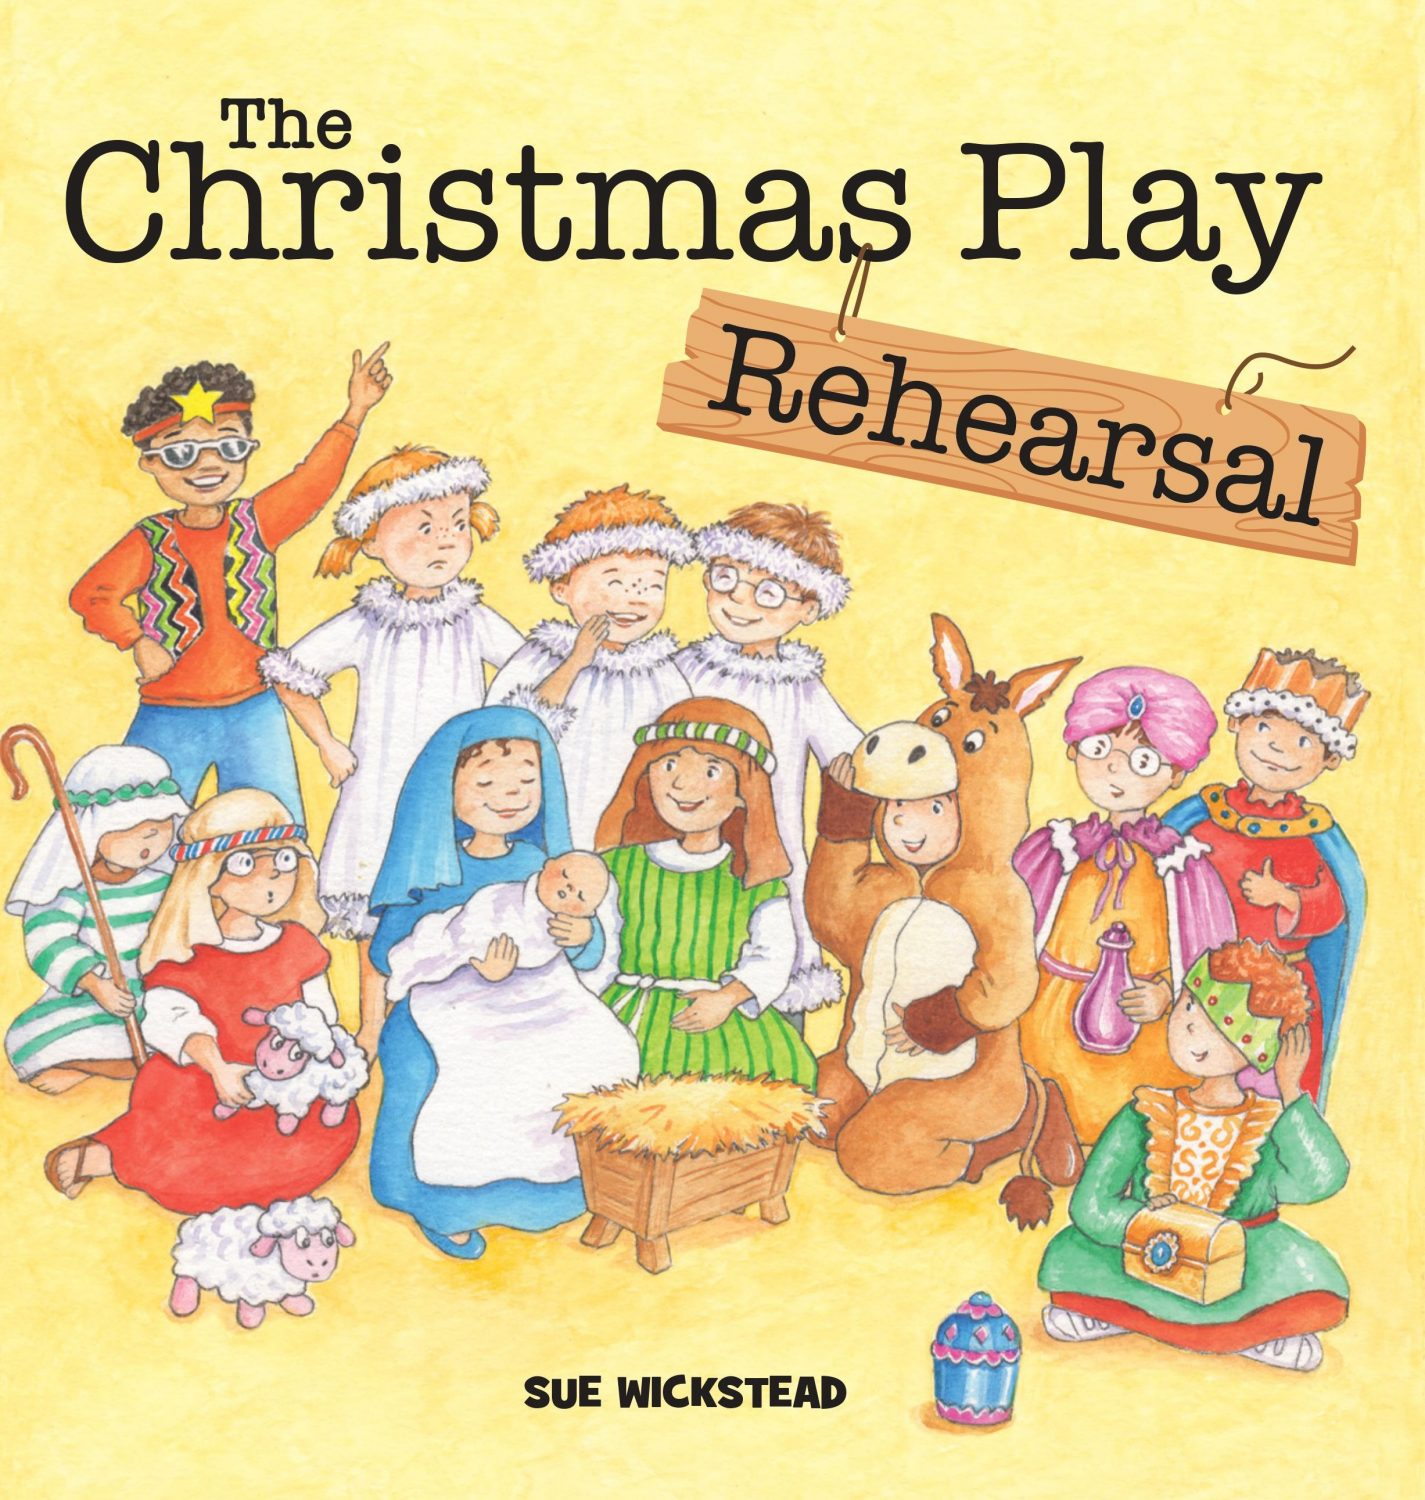 The Christmas Play Rehearsal